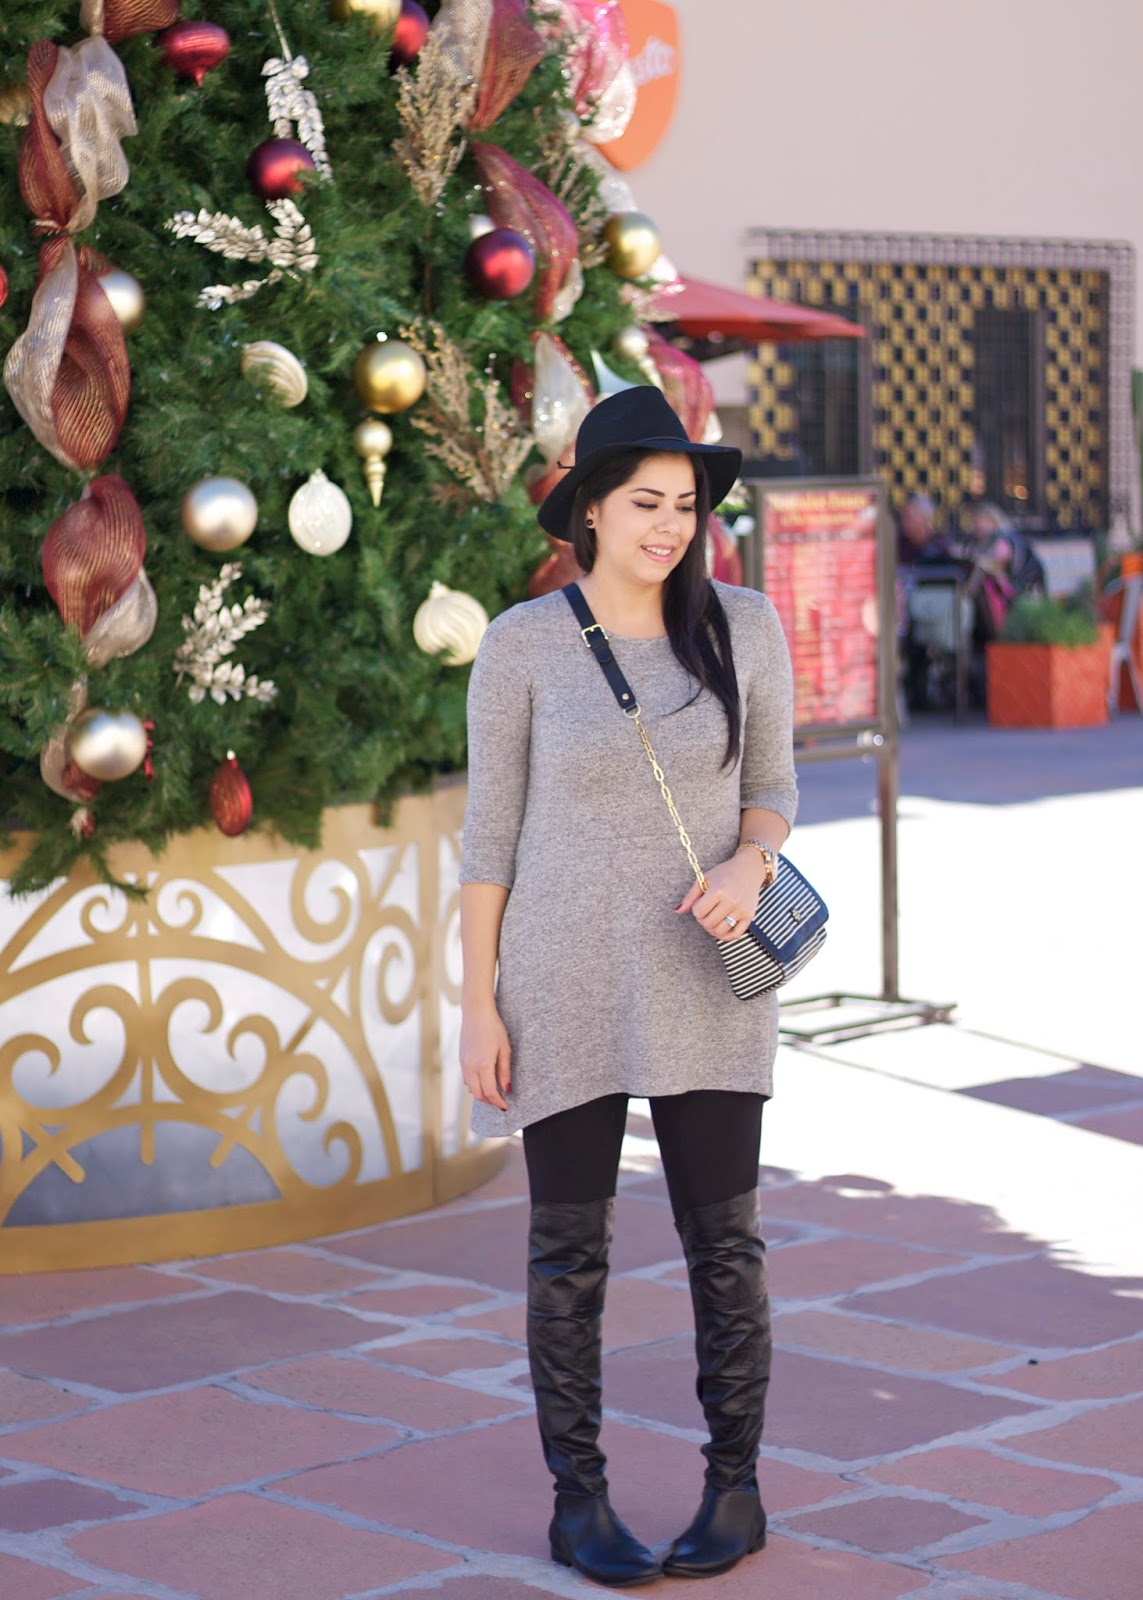 chic holiday shopping outfit, comfy winter outfit, san diego fashion blogger, the headquarters san diego, christmas tress in sd